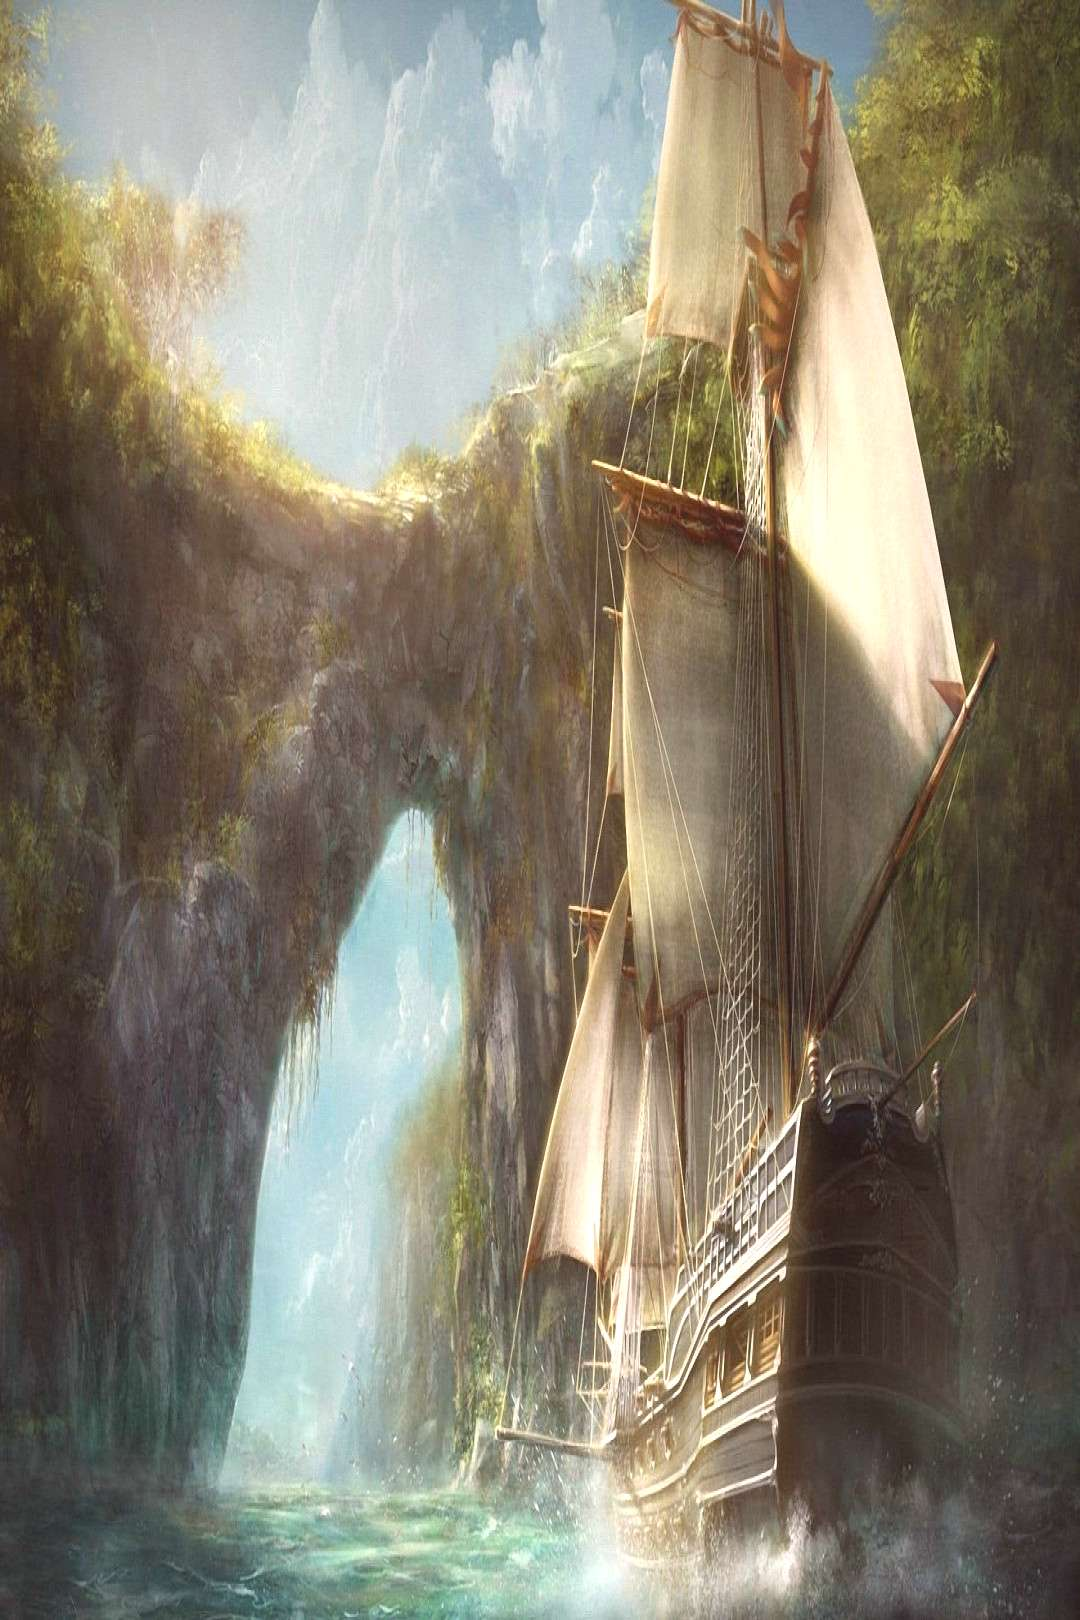 white and brown galleon ship illustration old ship digital art